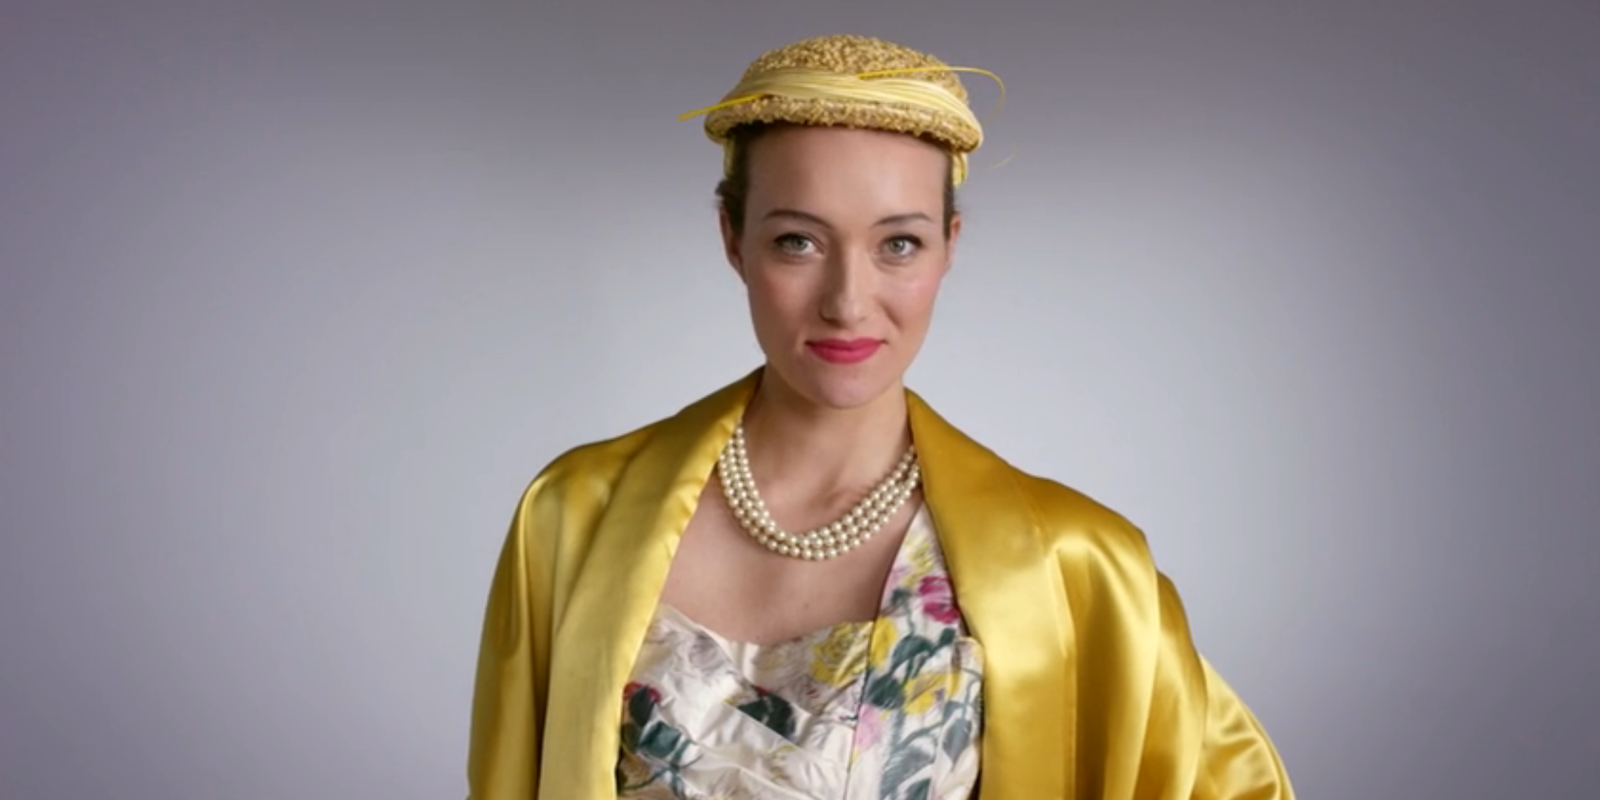 Watch this Woman Model 100 Years of U.S. Fashion in 2 Minutes